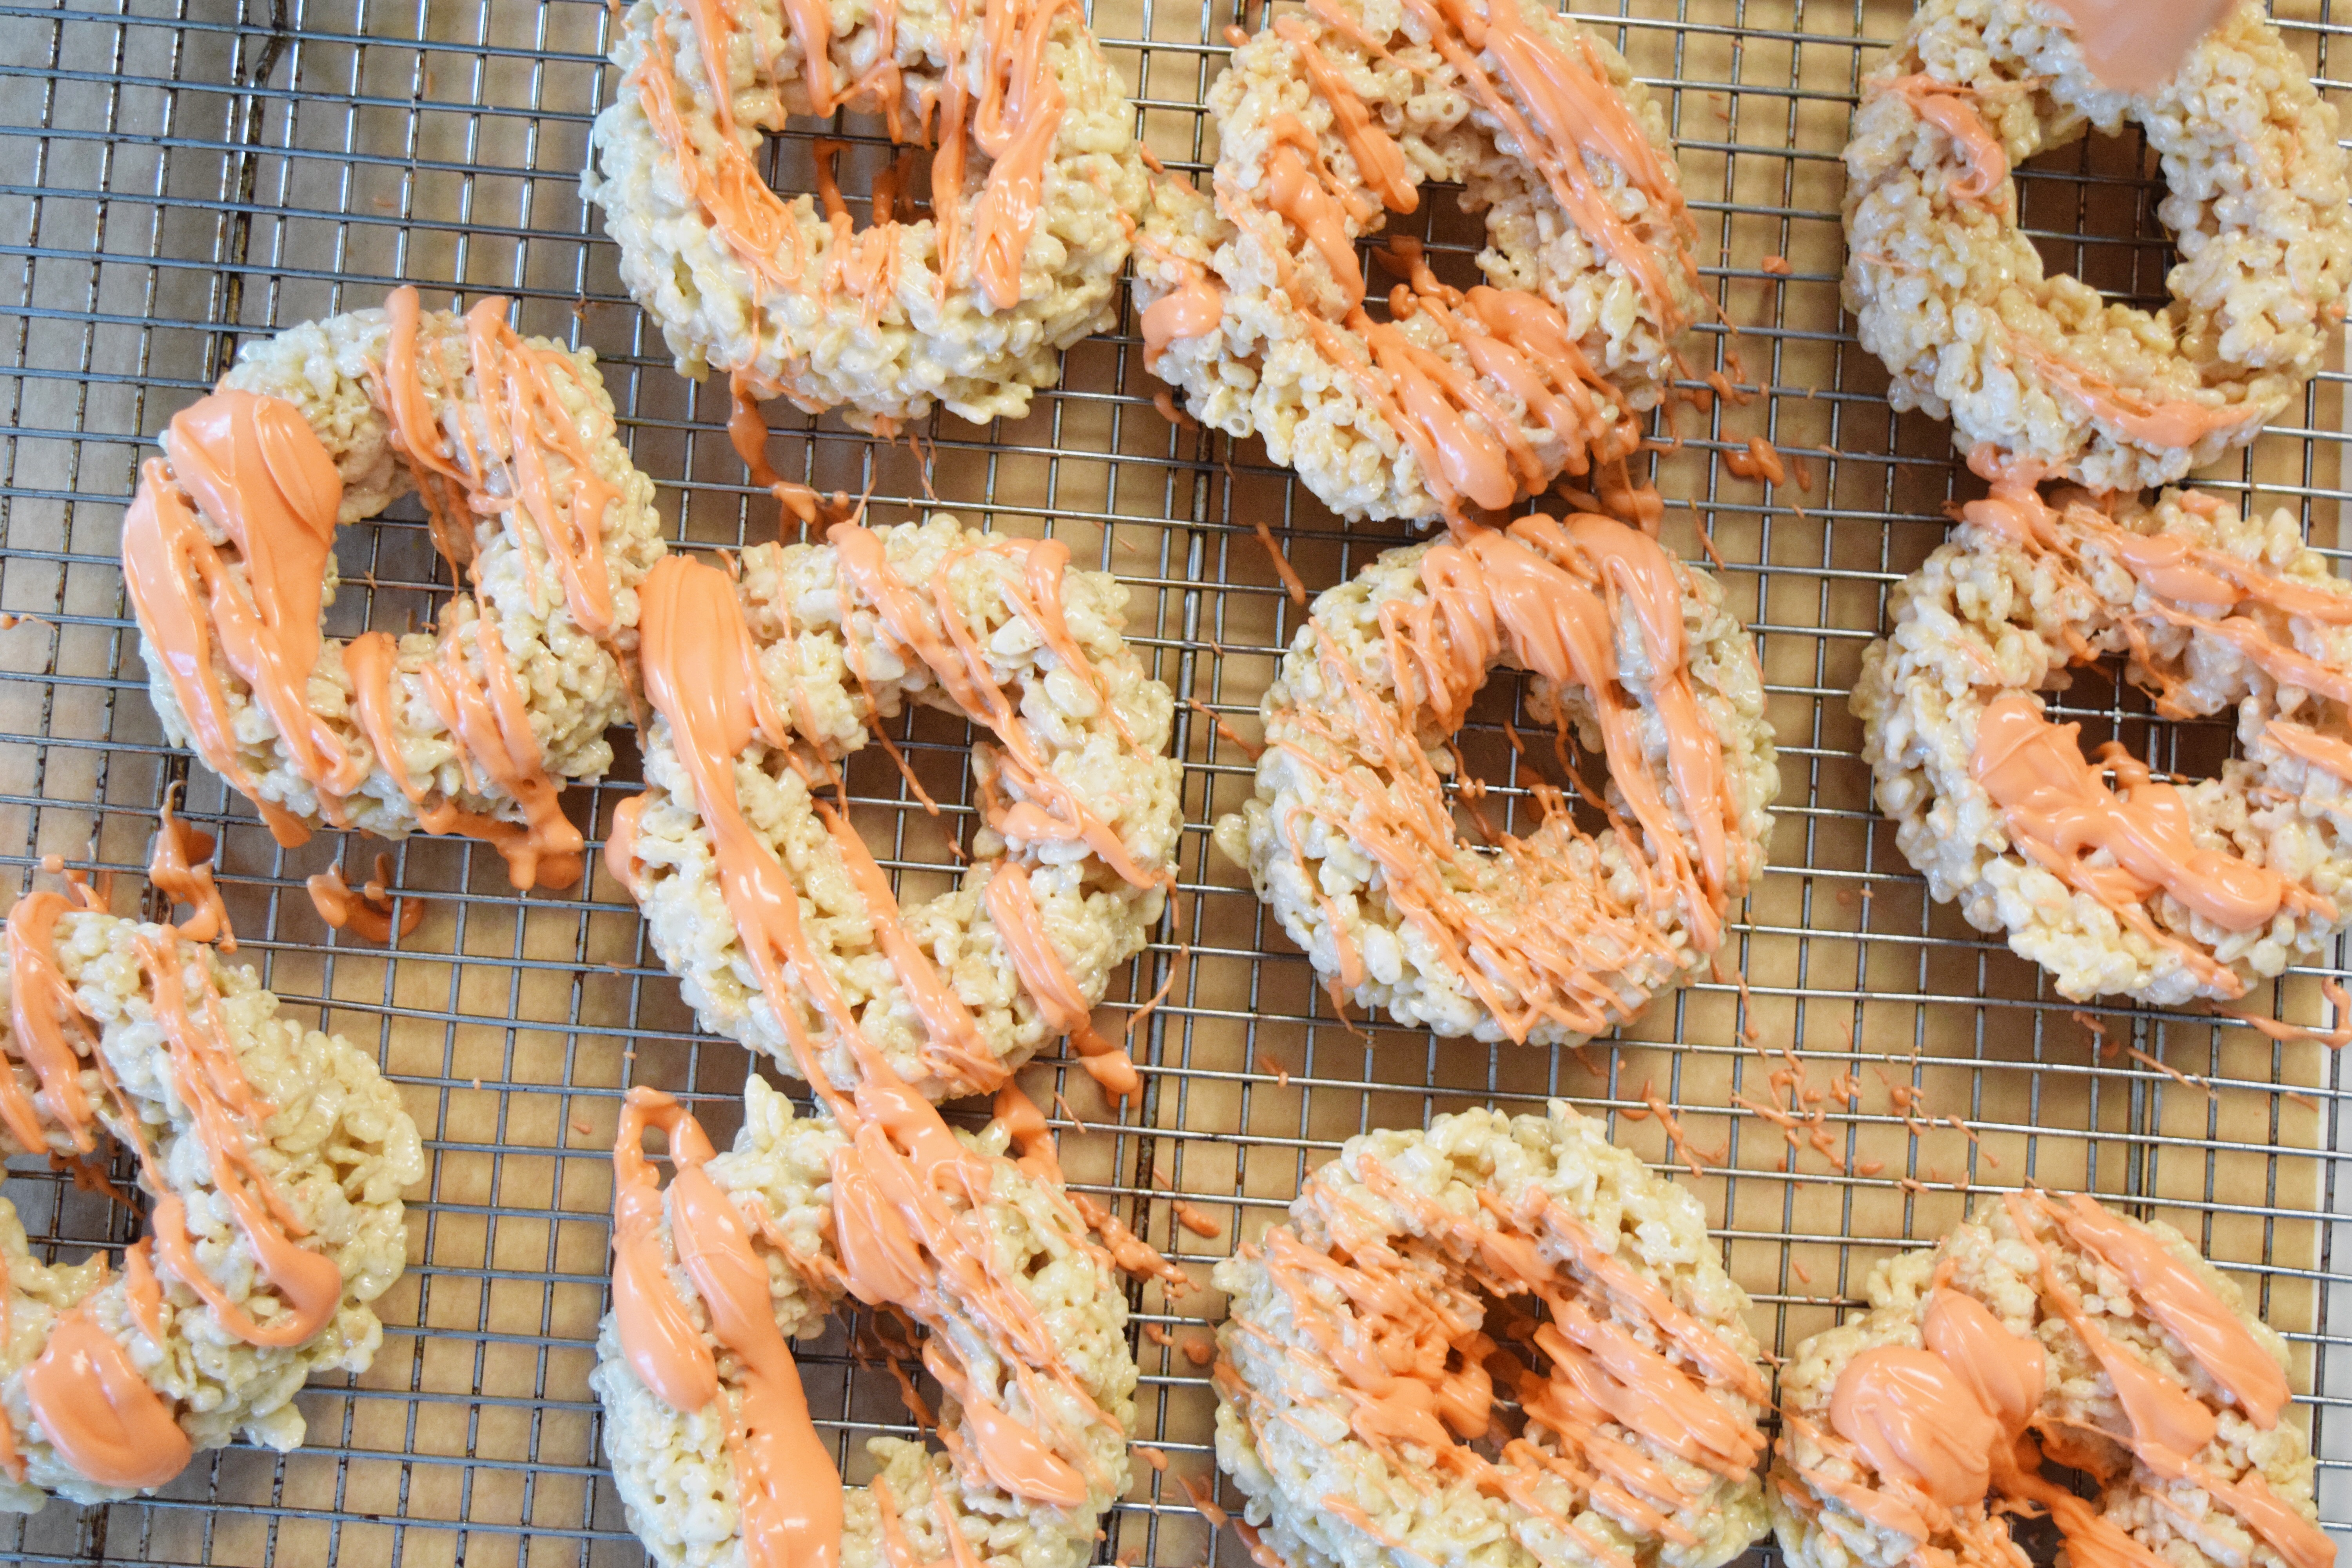 Autumn Spice Rice Krispie Doughnuts - Rice Krispie Recipes - Rice Krispie Ideas - Rice Krispie Original Recipe - Doughnuts Easy - Easy Fall Dessert - Quick Snack Recipe - Communikait by Kait Hanson